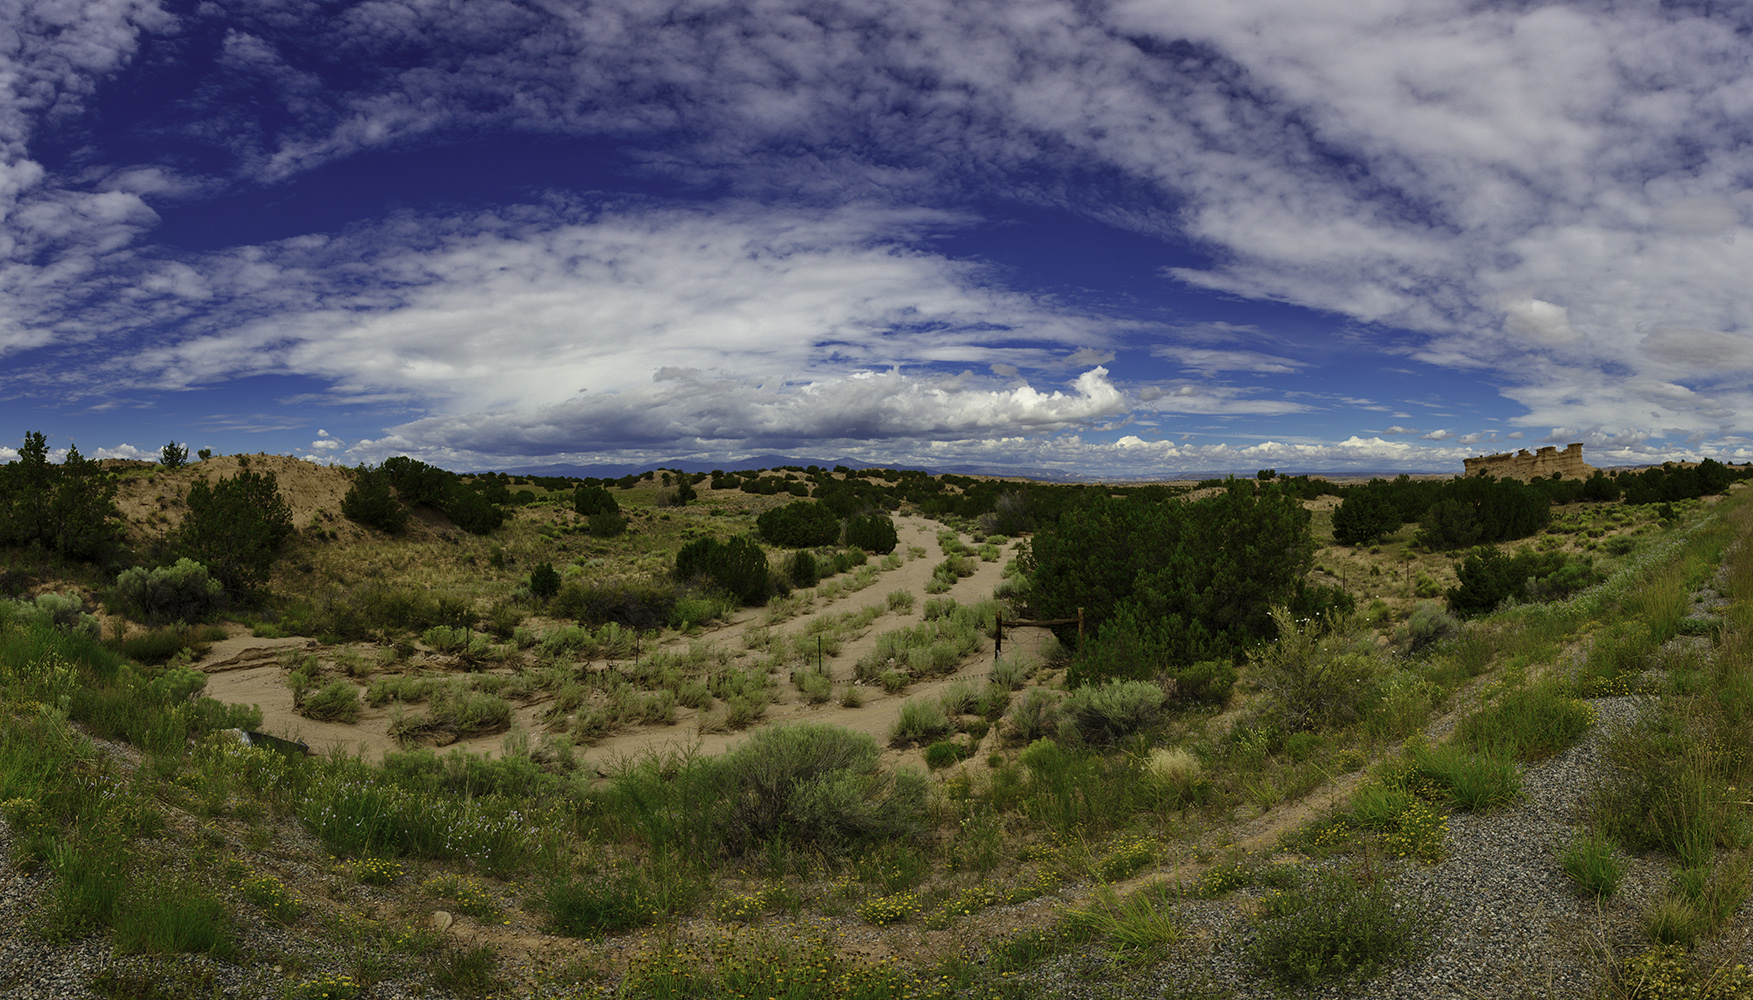 Location and Date: New Mexico, USA; 20 August 2014  Tech Specs: 16 mm @ f/11.0.  ISO 100.  6 Shot Panorama  Camera & Lens: Canon 5D Mark III; Canon EF 16-35mm f/2.8L II USM